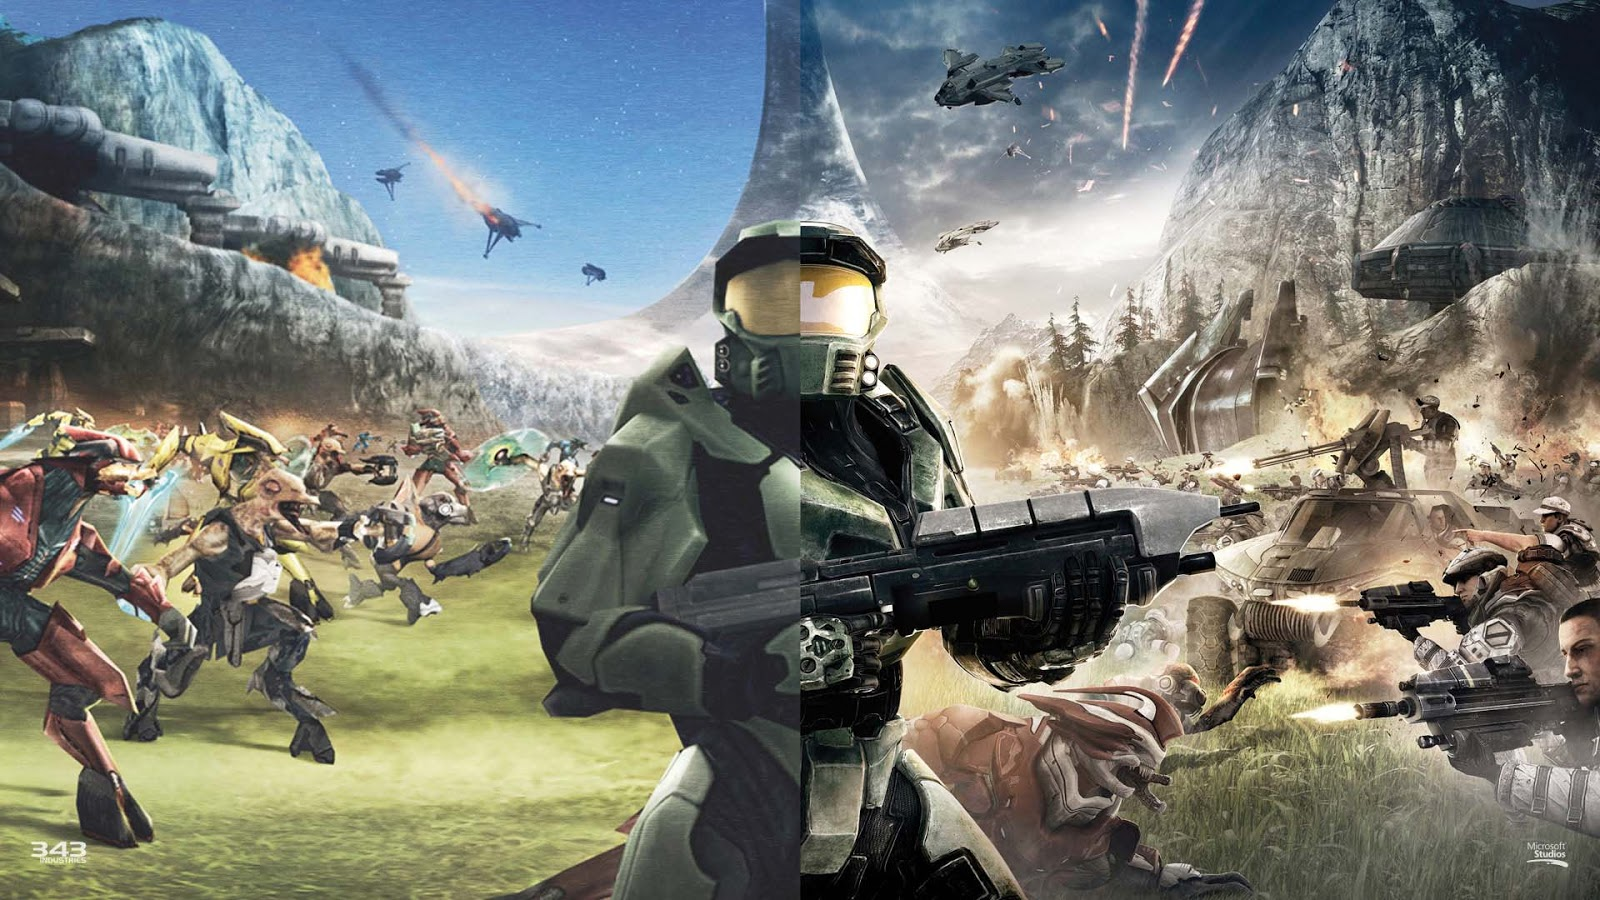 Halo-Combat-Evolved-Gameplay-Screenshot-1